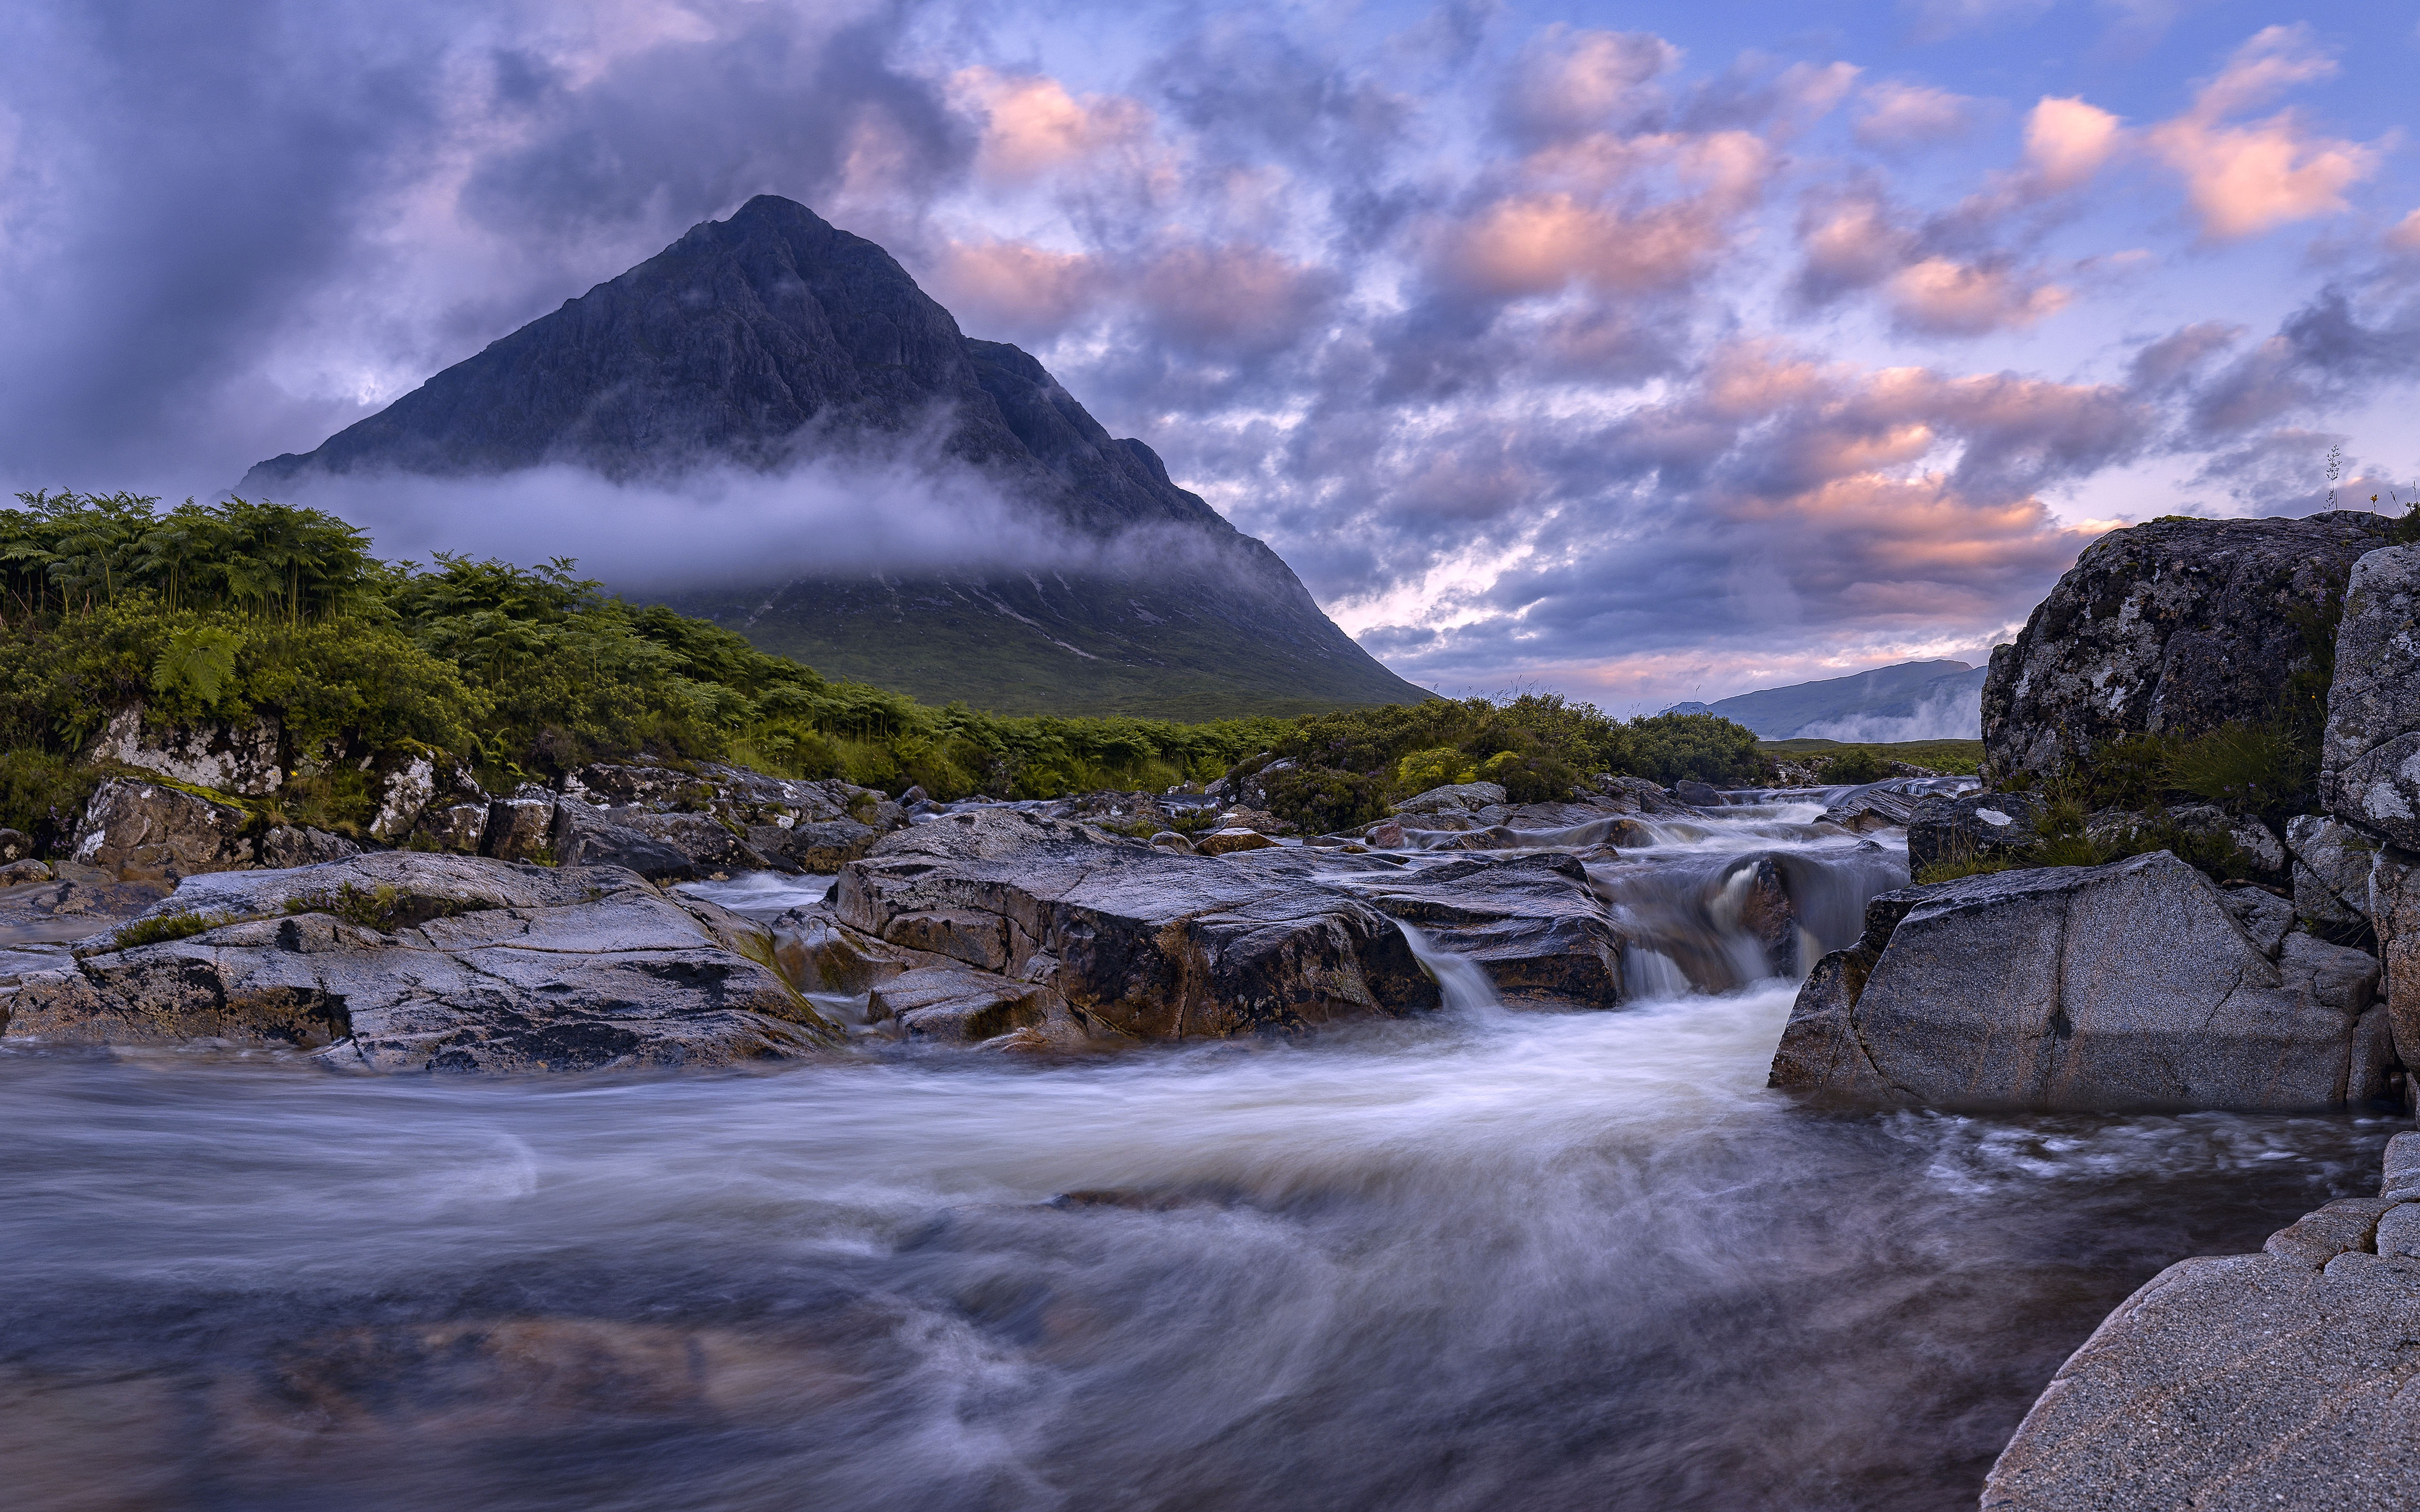 Fall Mountain Scenery Wallpaper Buachaille Etive Mor Glencoe Scotland View From The River